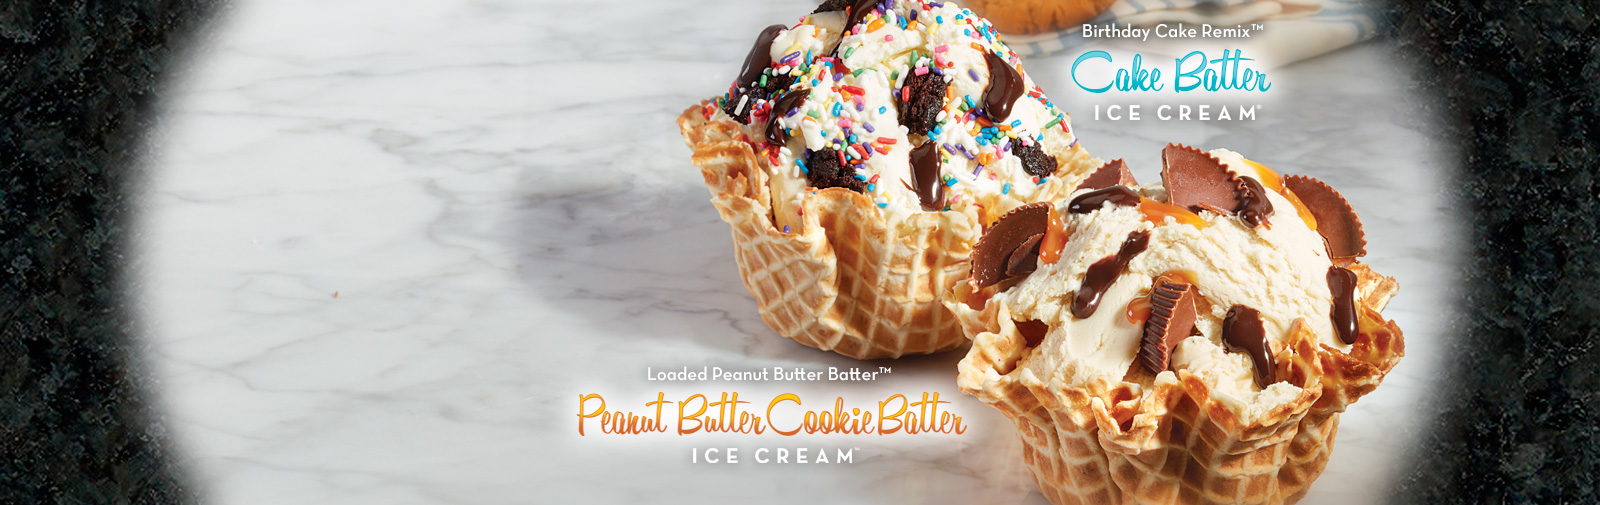 Peanut Butter Cookie Batter Ice Cream